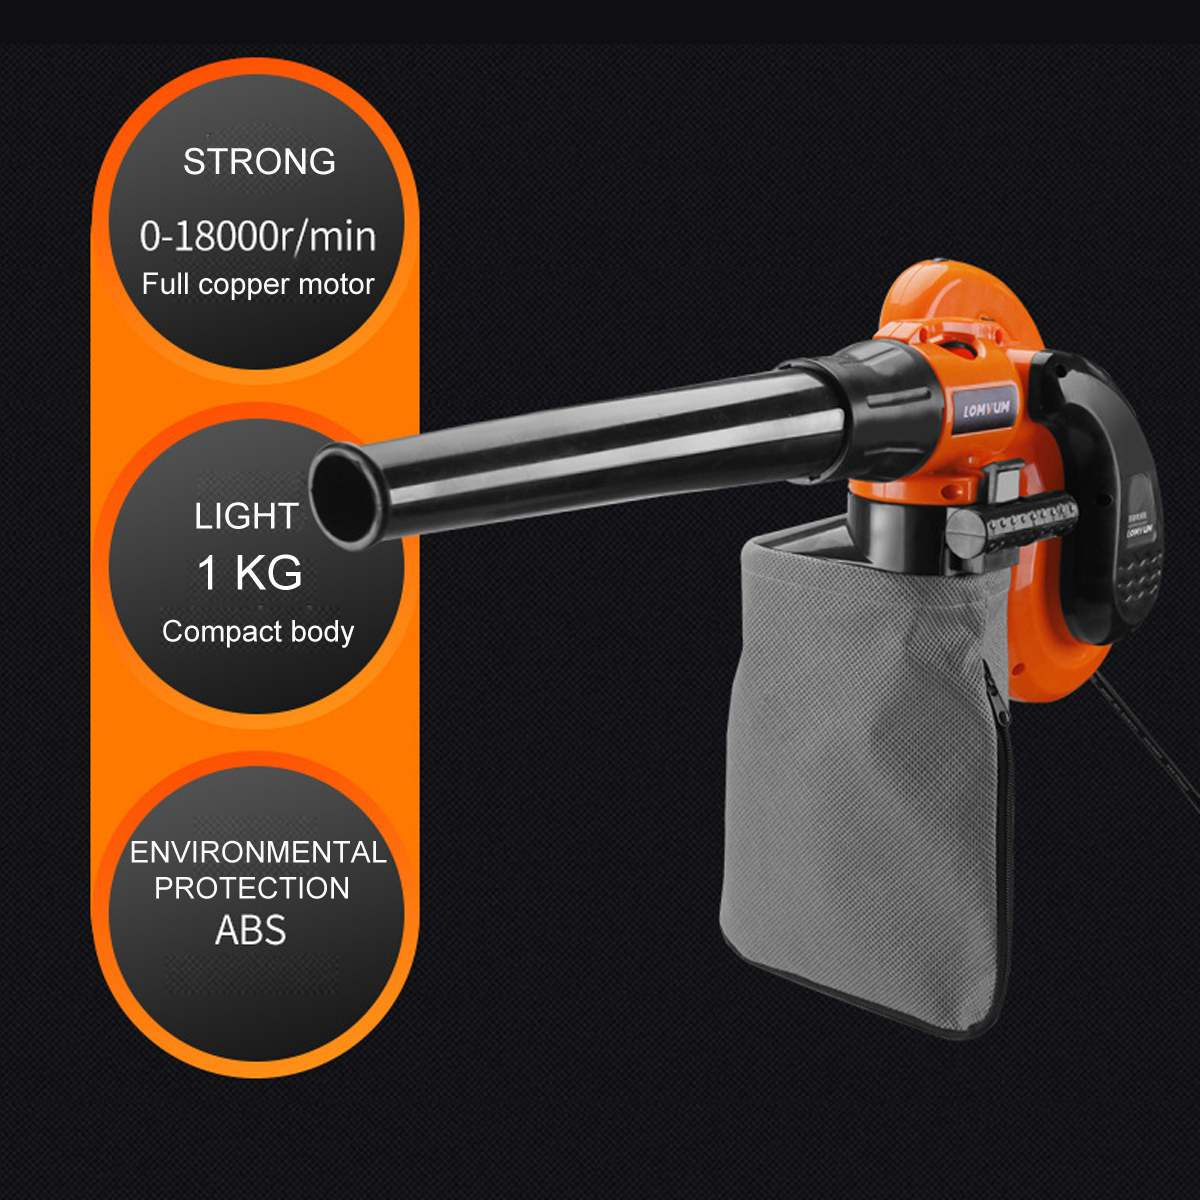 1000W Air Leaf Blower Electric Air Blower Vacuum Cleaner Blowing Dust Collecting 2 In 1 Computer Dust Collector Cleaner